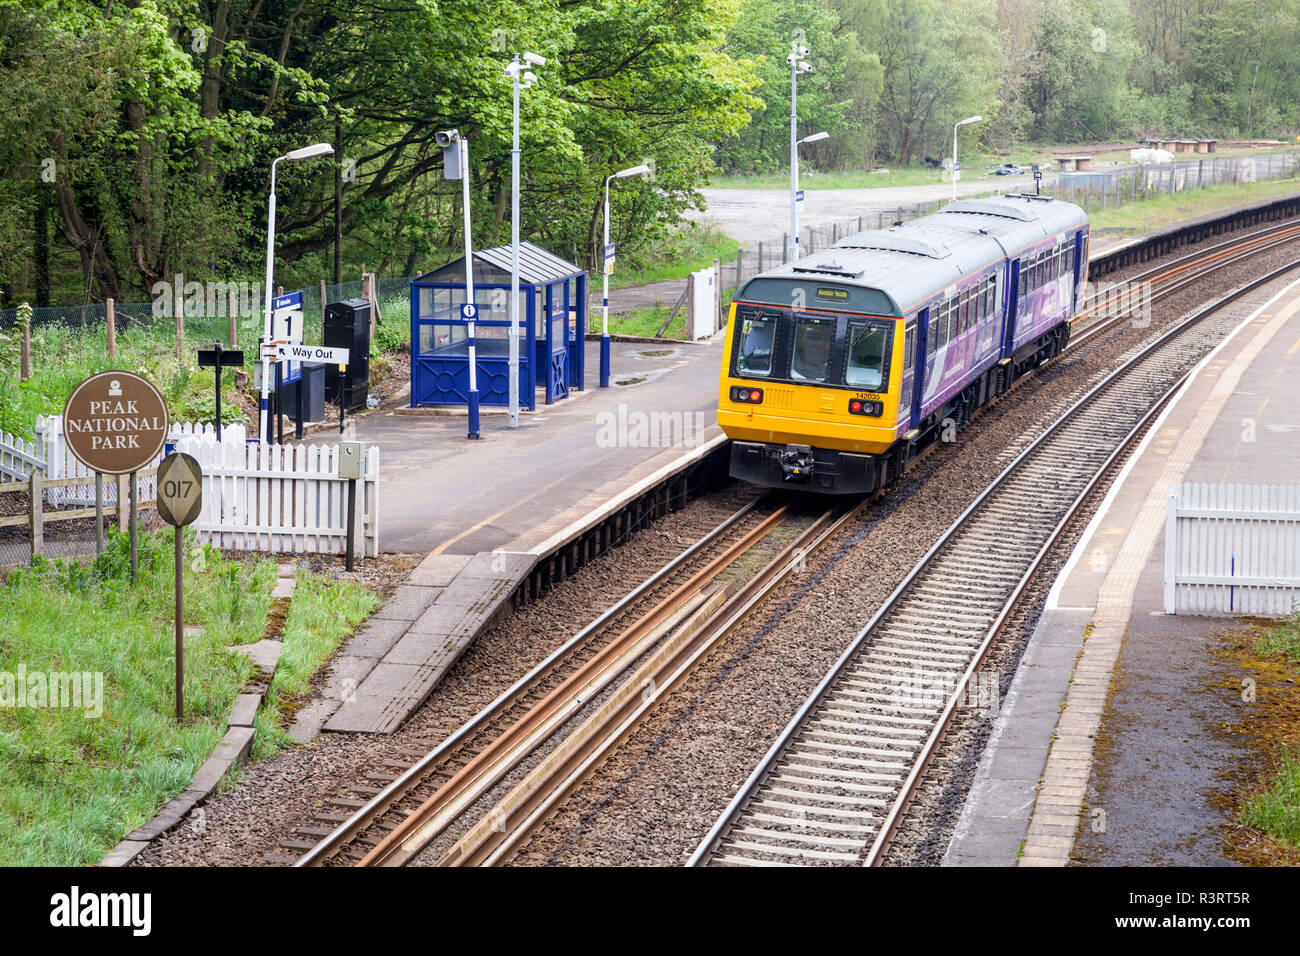 Public transport in the countryside. Northern Rail train waiting at the platform, Grindleford Railway Station, Derbyshire, Peak District, England, UK - Stock Image